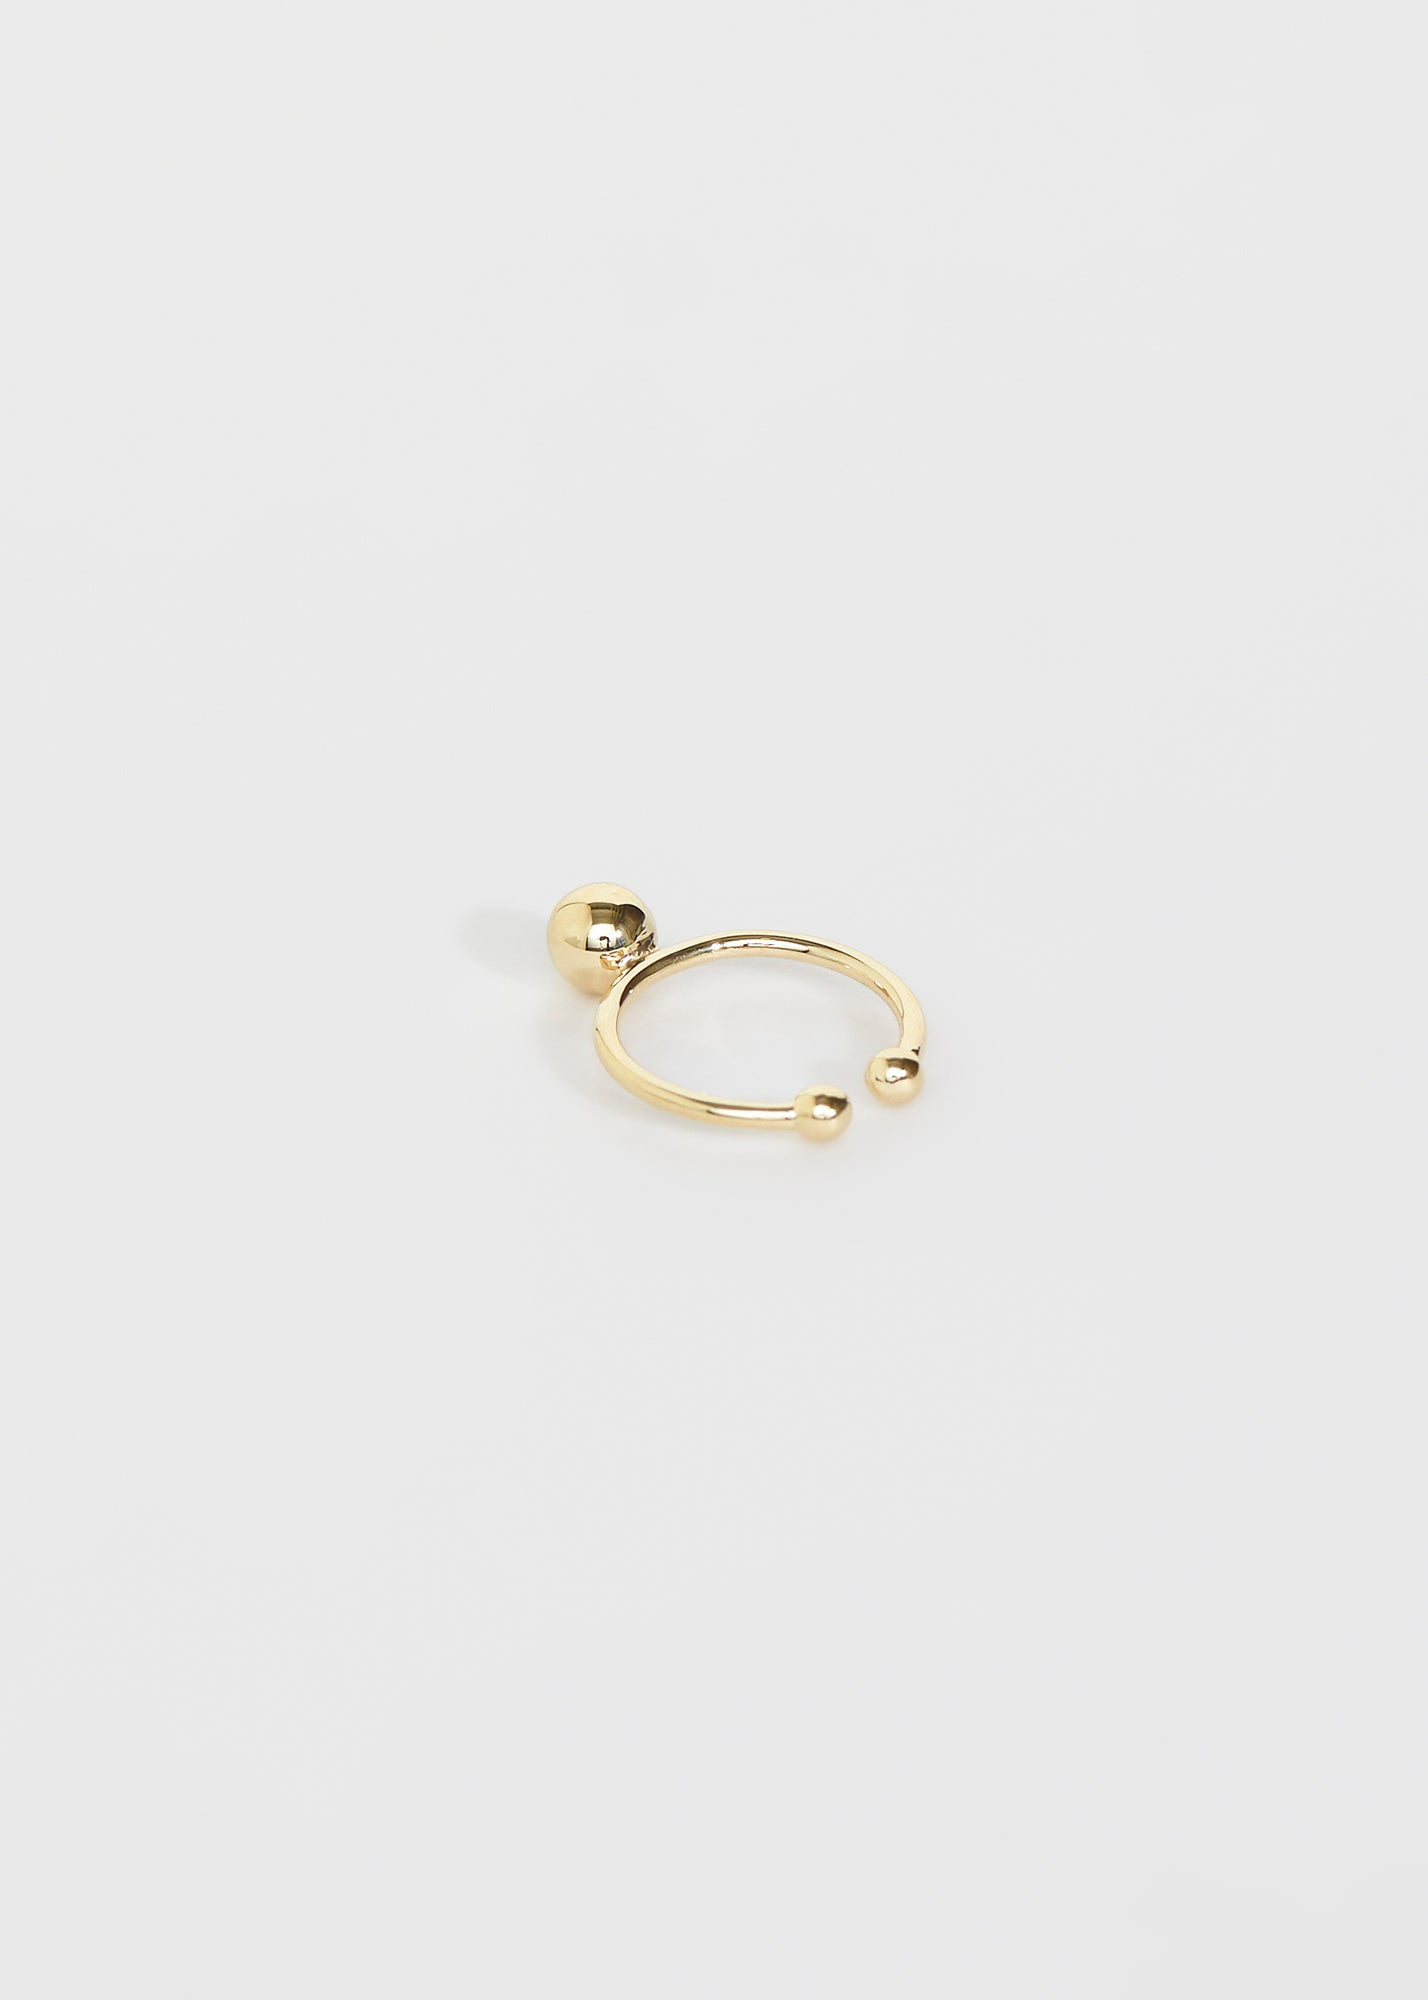 Ear Bullet II - Trine Tuxen Jewelry